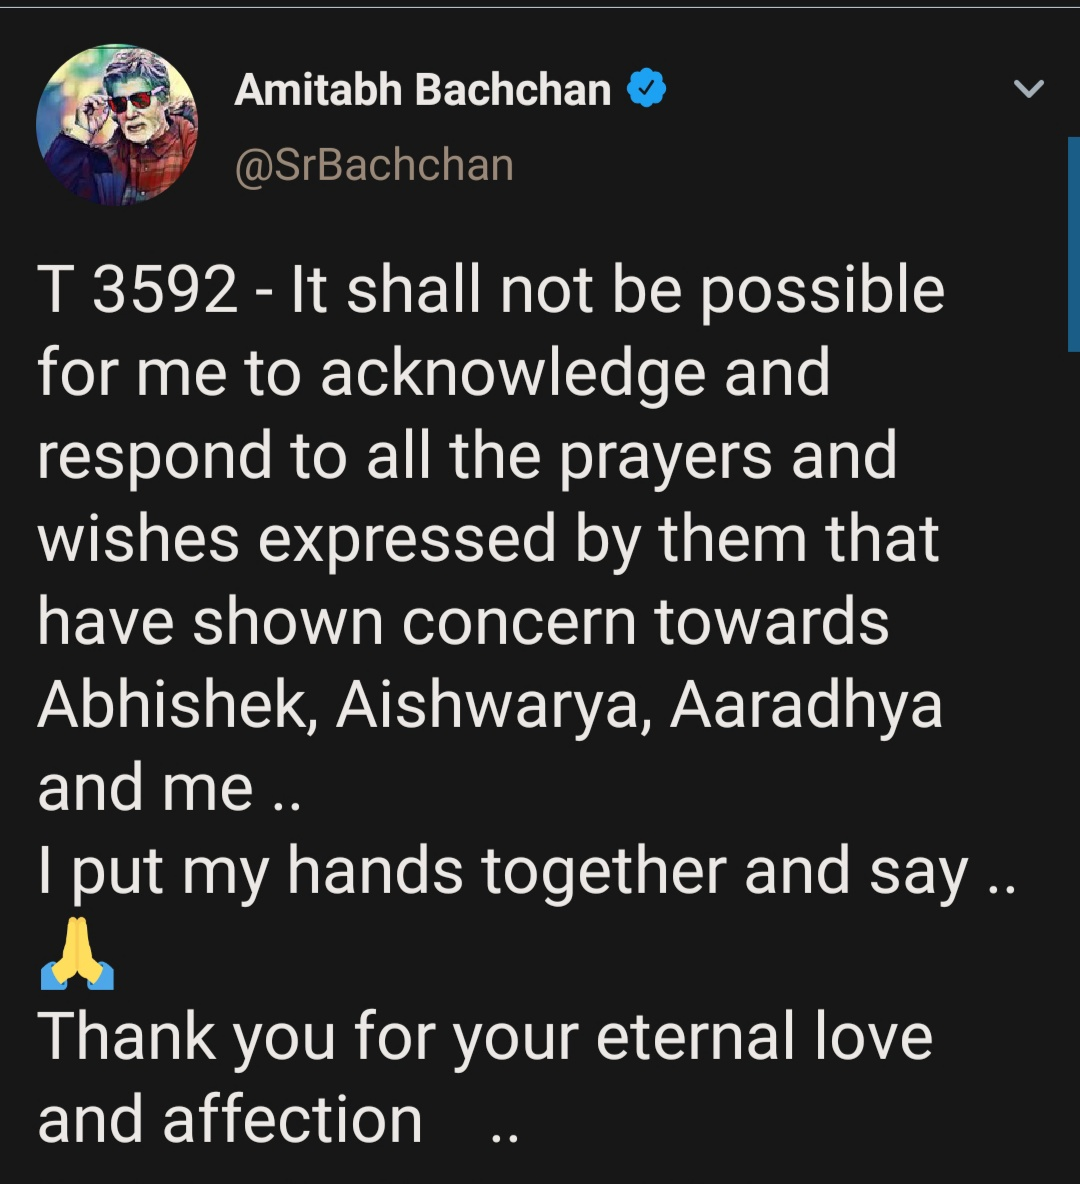 Thank you for the love' - Amitabh Bachchan thanks fans for the love during Coronavirus crisis